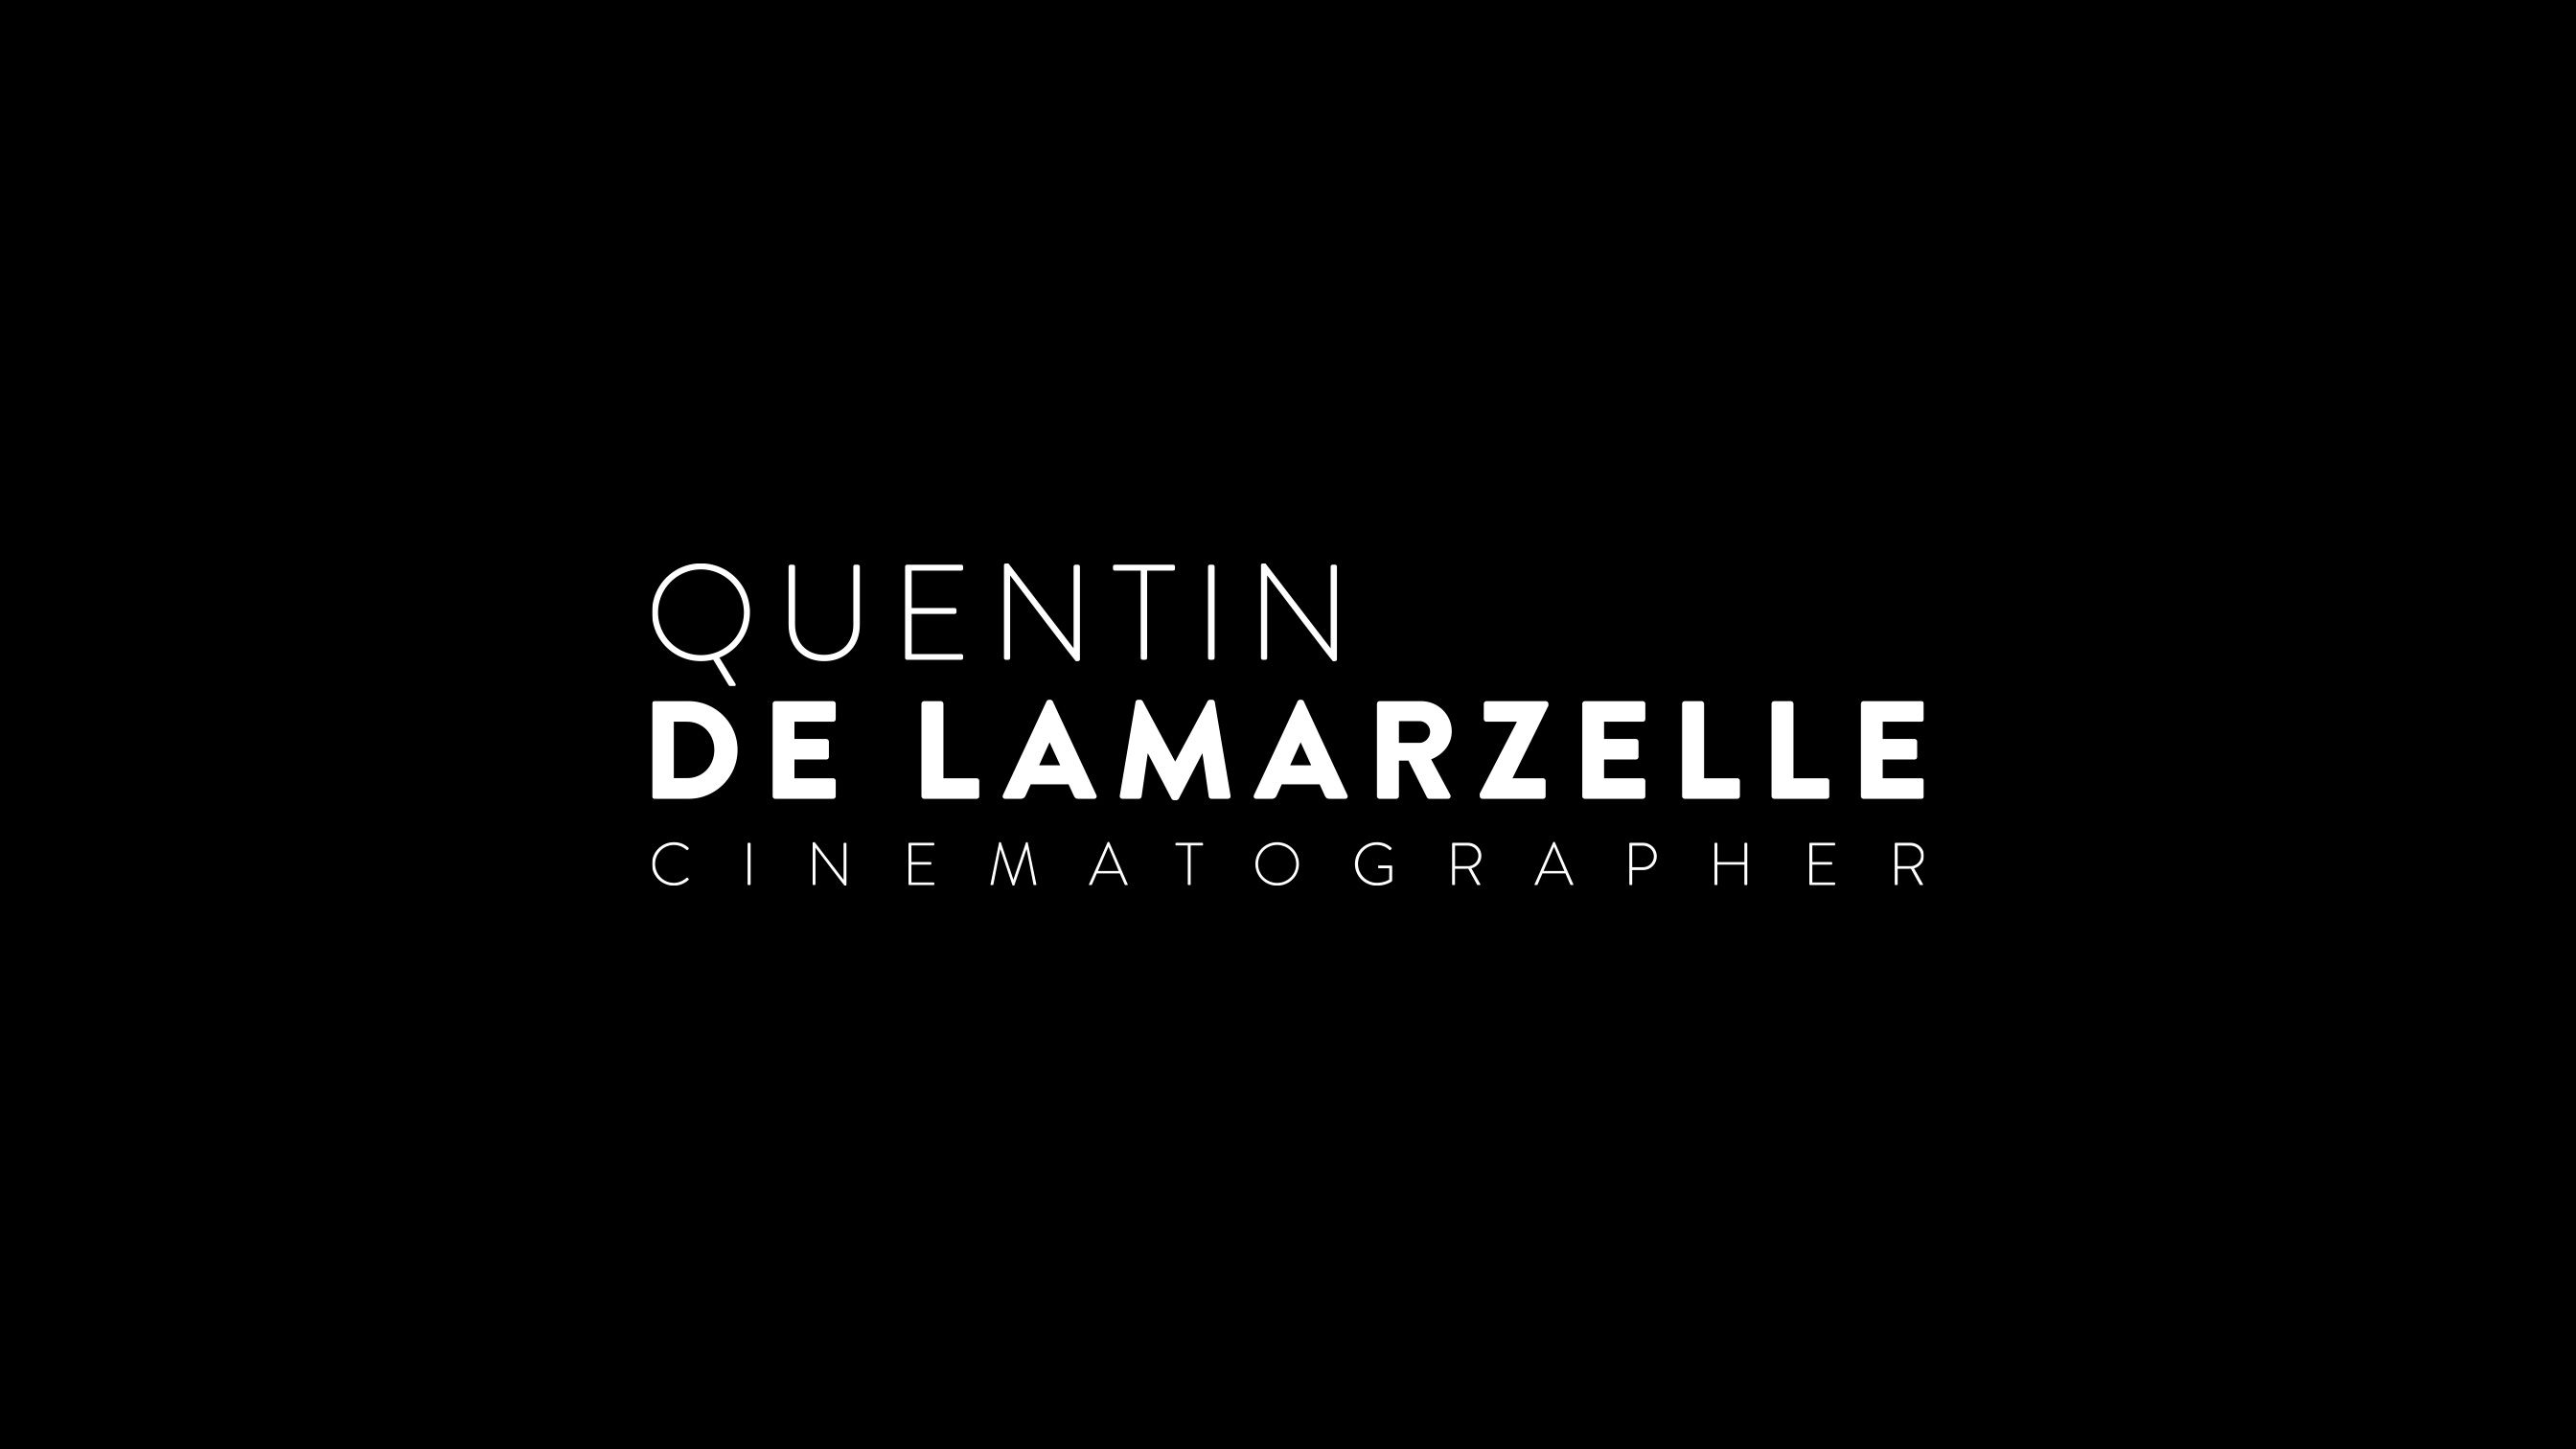 01-quentin-de-lamarzelle-pikteo-webdesign-graphic-design-freelance-paris-bruxelles-londres